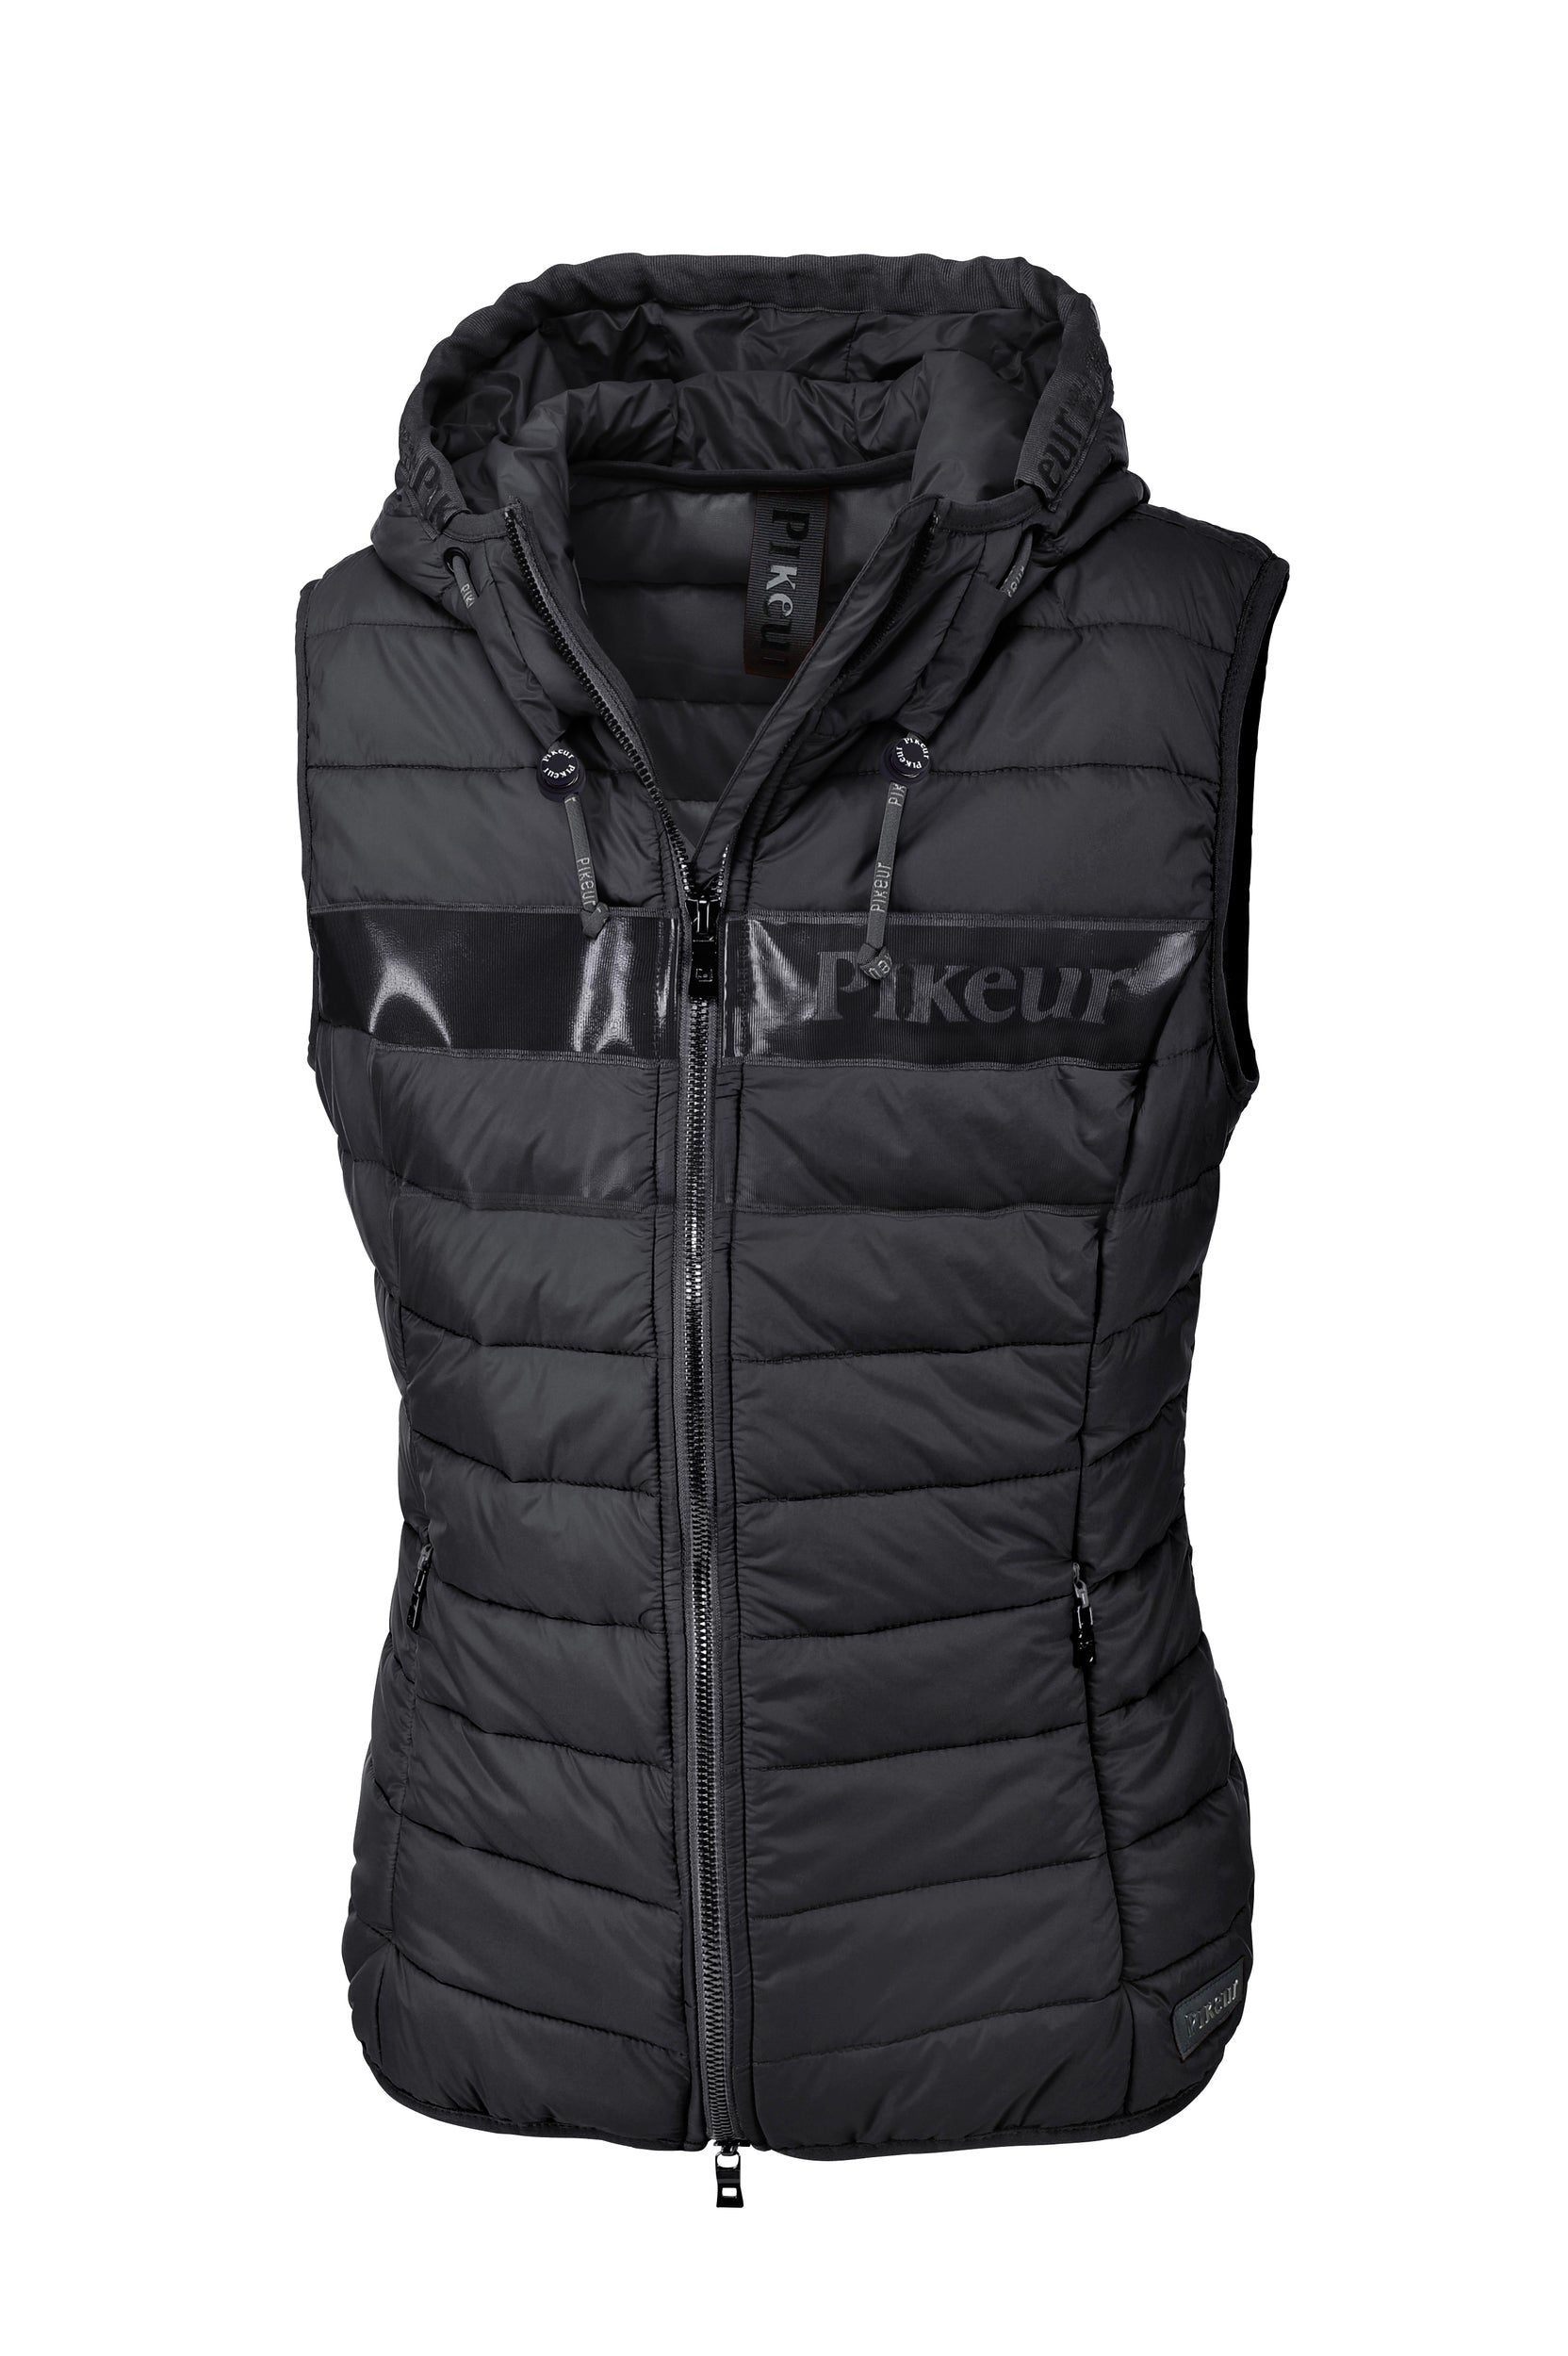 Pikeur SS20 New Generation Jess quilted Gilet - Anthra - Divine Equestrian